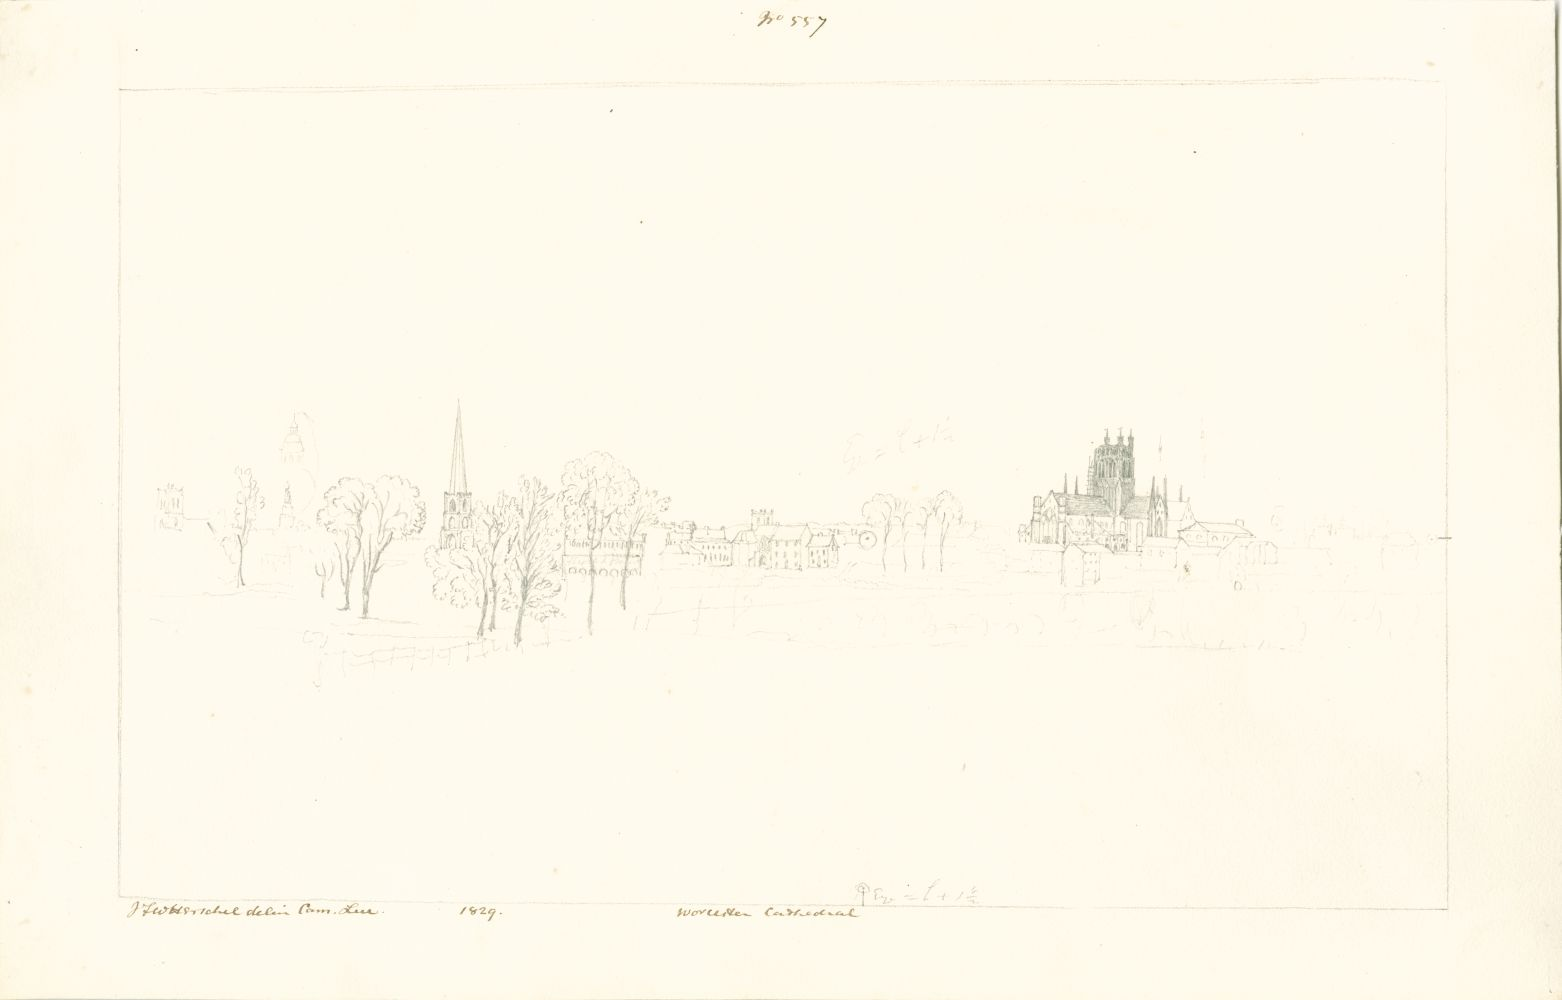 """Sir John Frederick William HERSCHEL (English, 1792-1872) """"No 557 Worcester Cathedral"""", 1829 Camera lucida drawing, pencil on paper 20.2 x 32.2 cm on 24.4 x 38.5 cm paper Watermark """"J Whatman Turkey Mill"""". Numbered, signed, dated and titled """"No 557 / JFW Herschel delin Cam. Luc. / 1829 / Worcester Cathedral"""" in ink in border. Titled """"Worcester"""" in pencil on verso."""